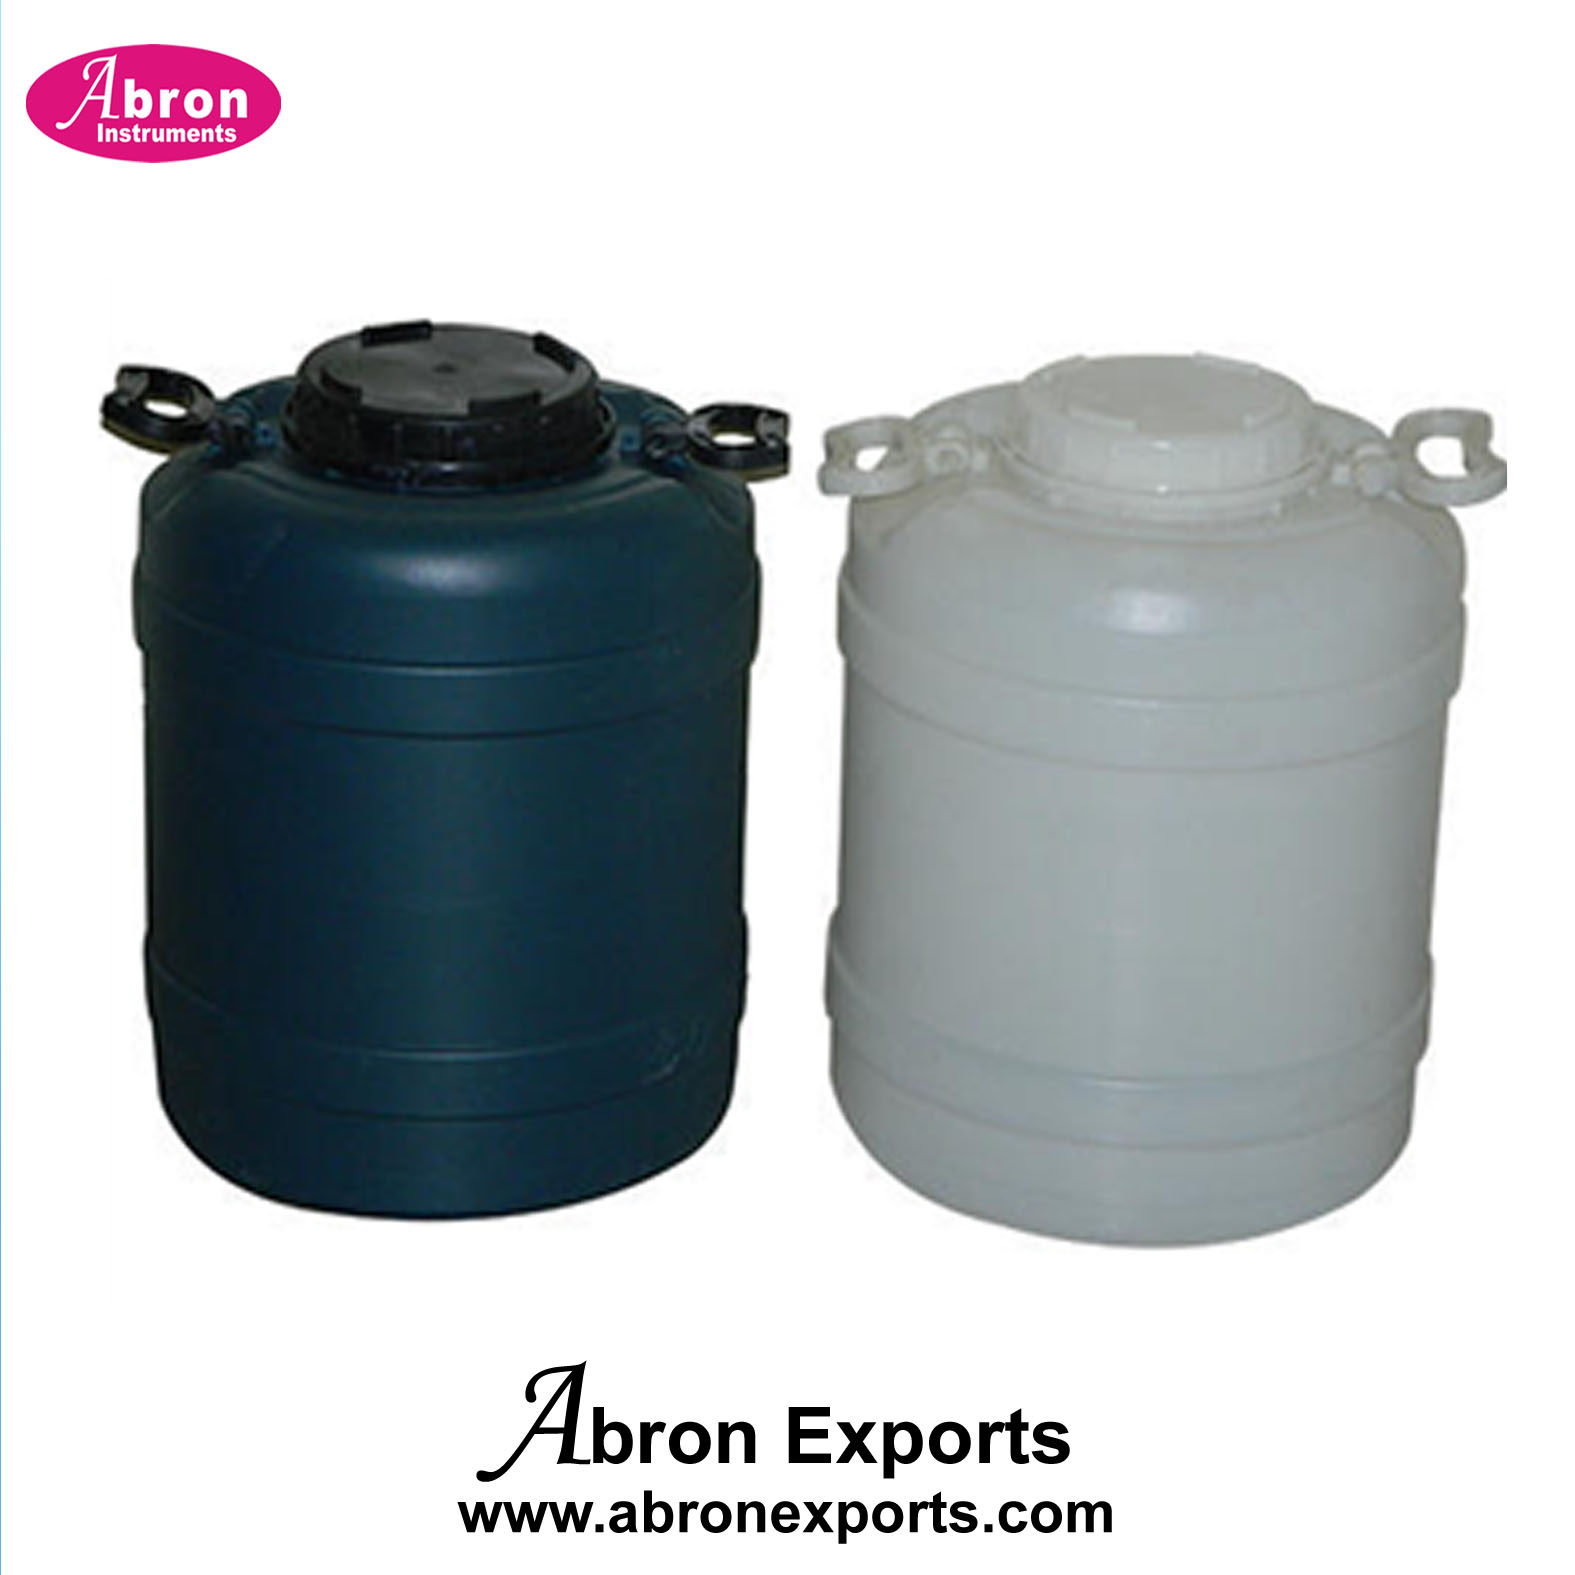 Honey Containers For Storage Collecting 30kg Plastic with carrying Handle Abron AT-9515